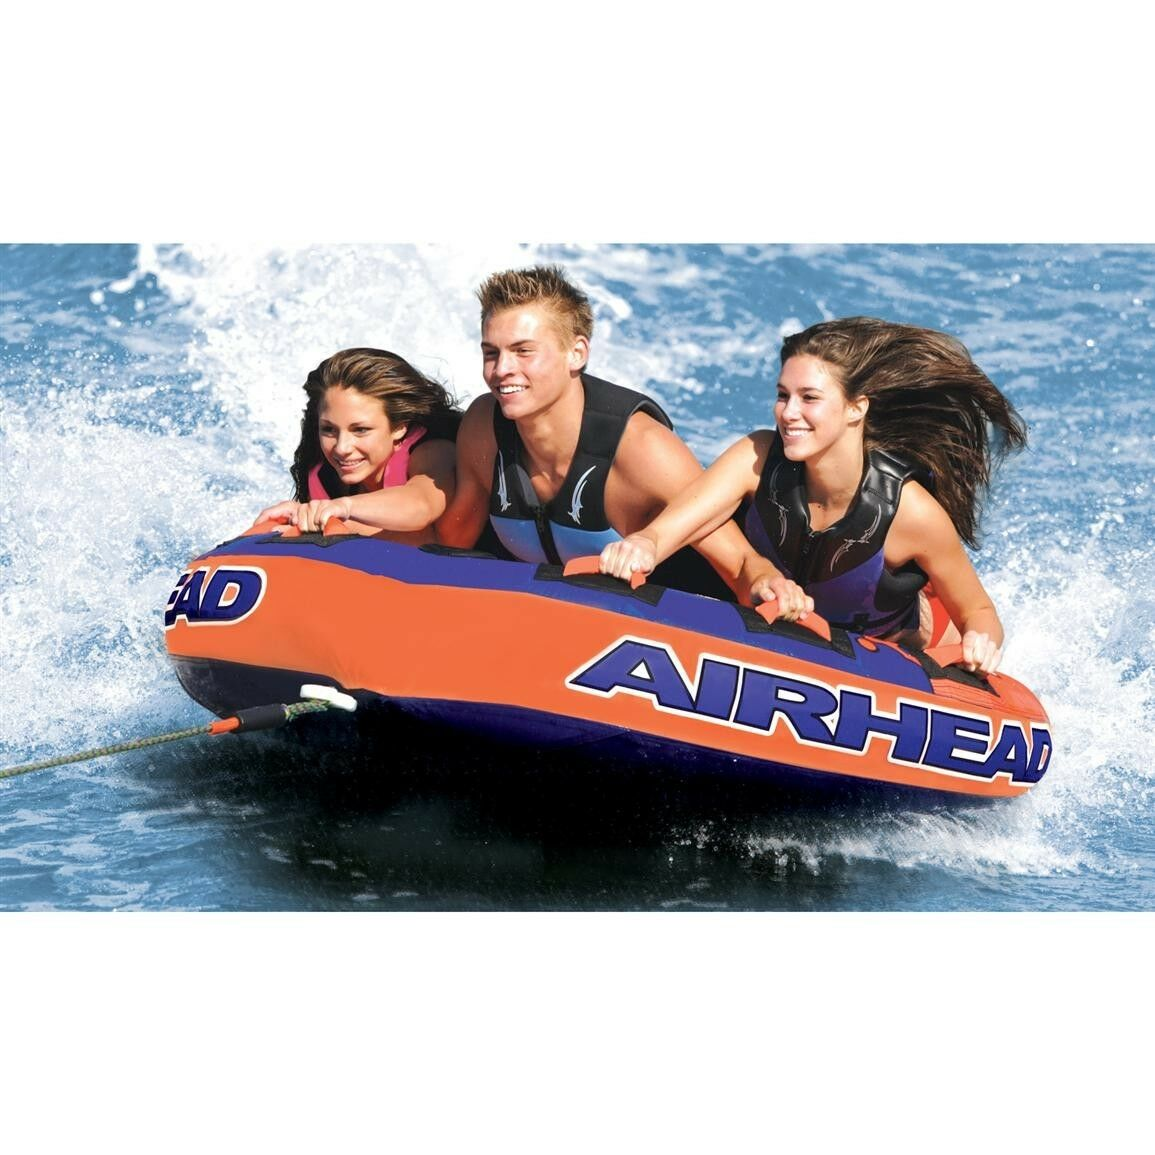 Boating Airhead Super Slice Towable Water Tube 3 Person Rider  ahssl-32